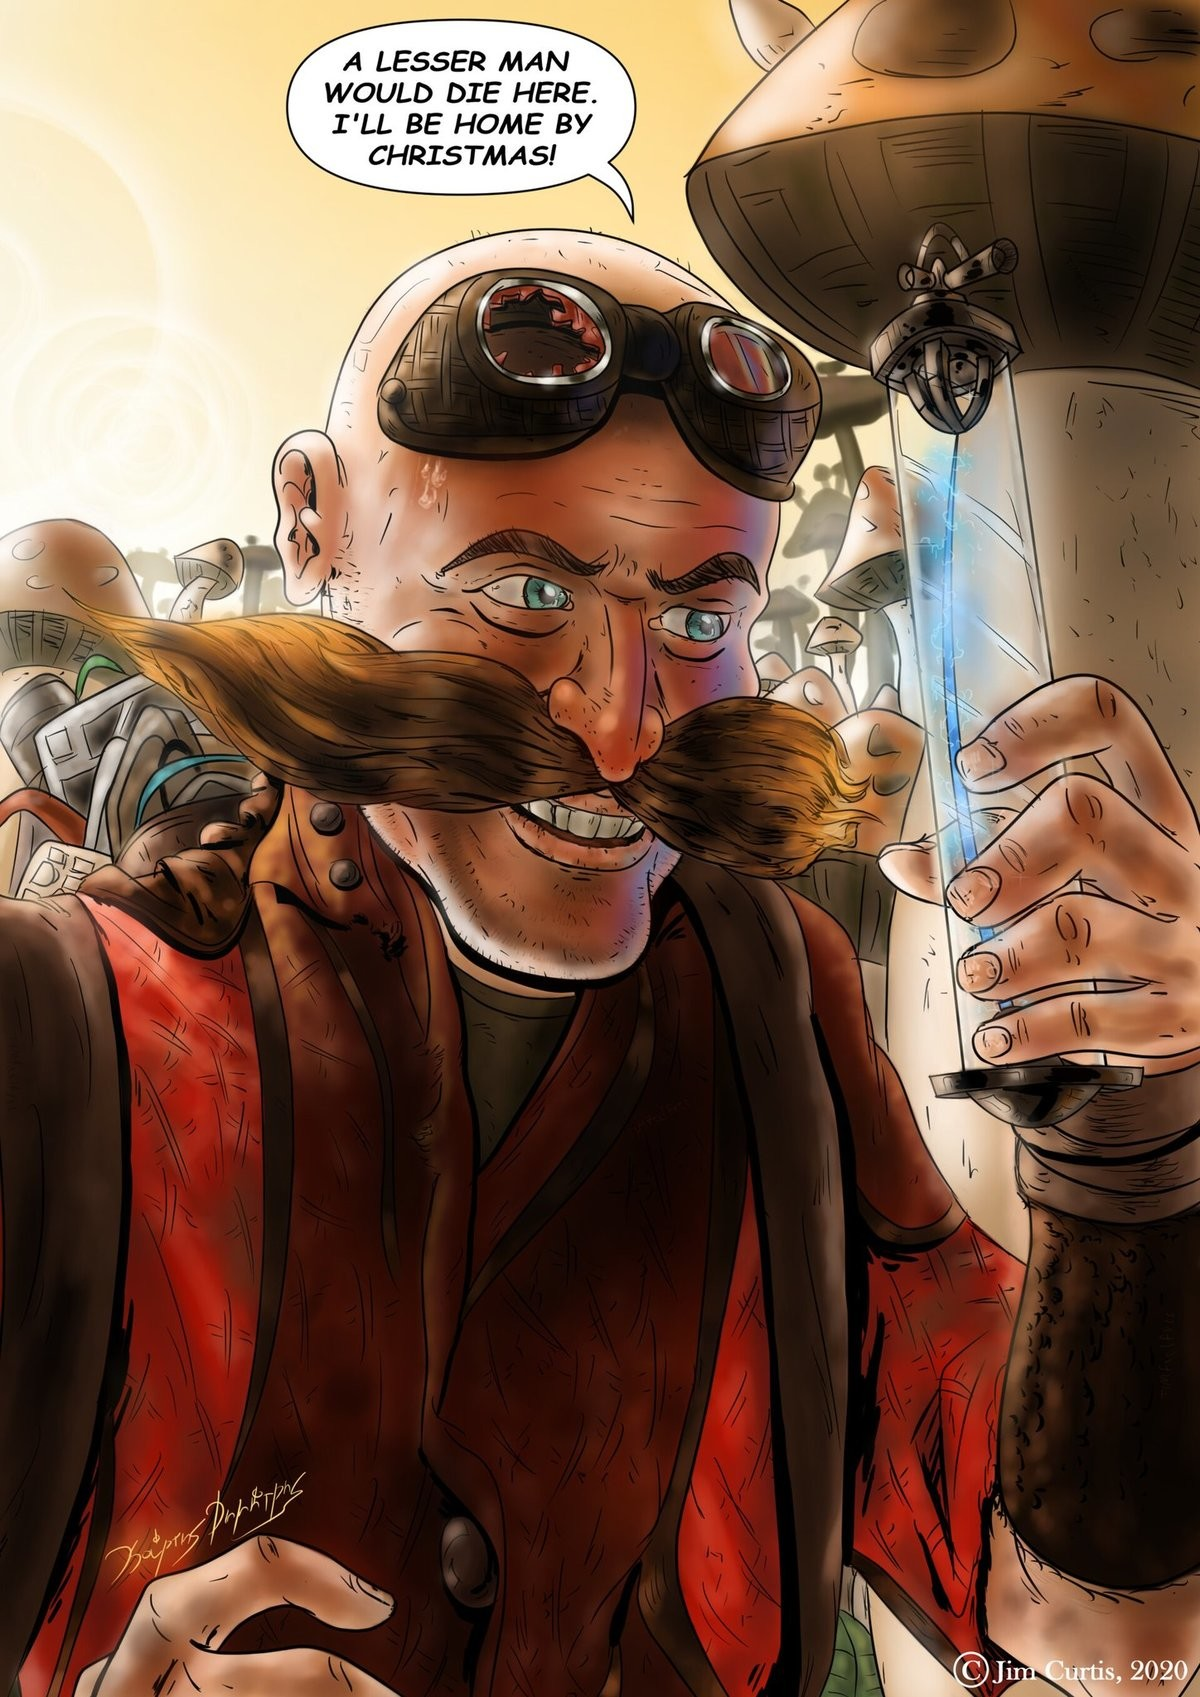 Return of the King. .. NGL, really am excited to see Jim Carrey go full Eggman.